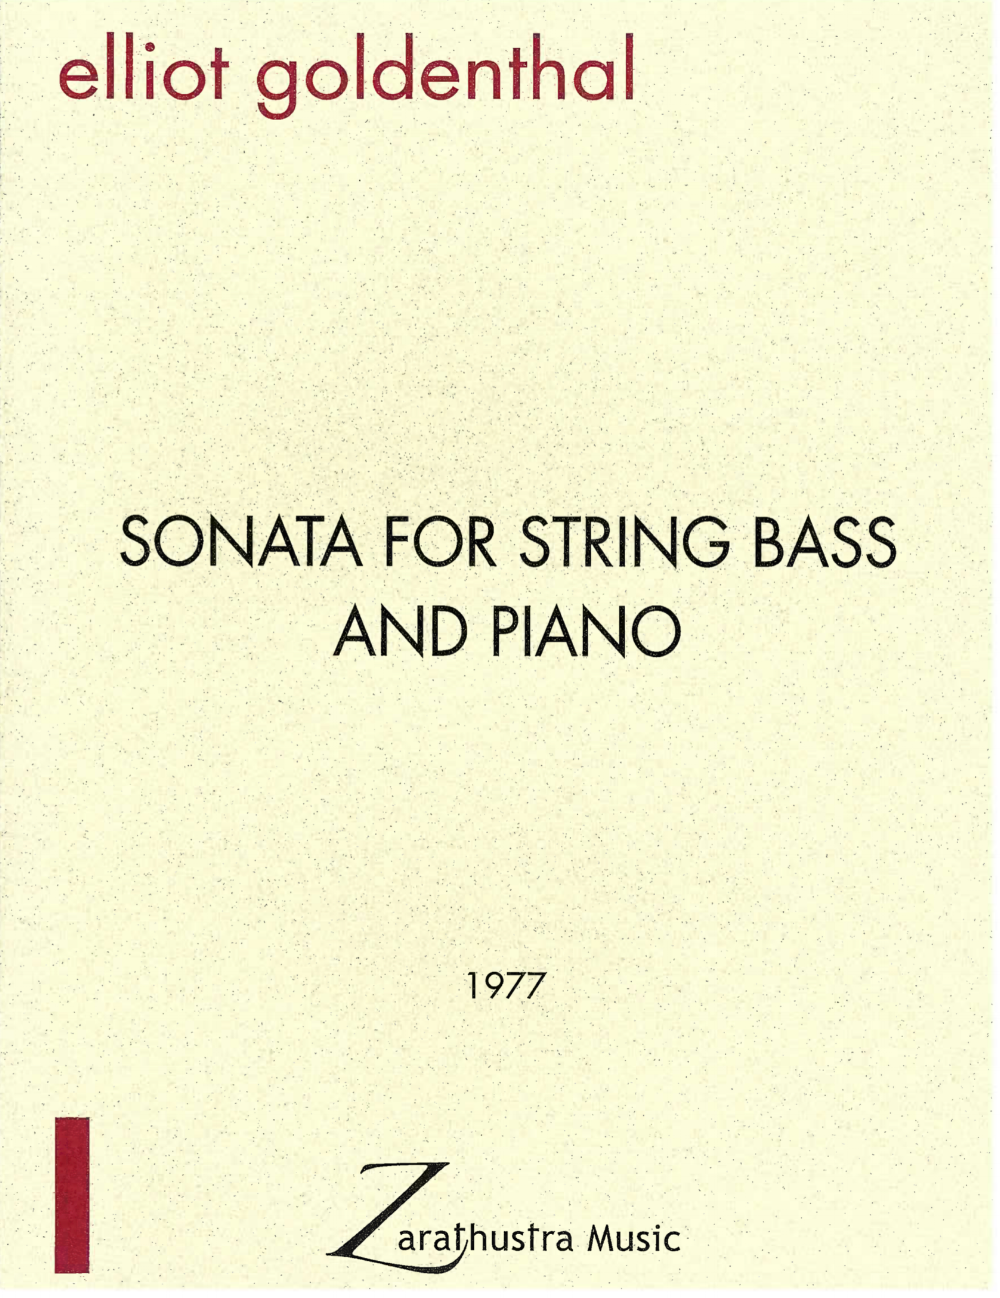 sonata string bass and piano.png